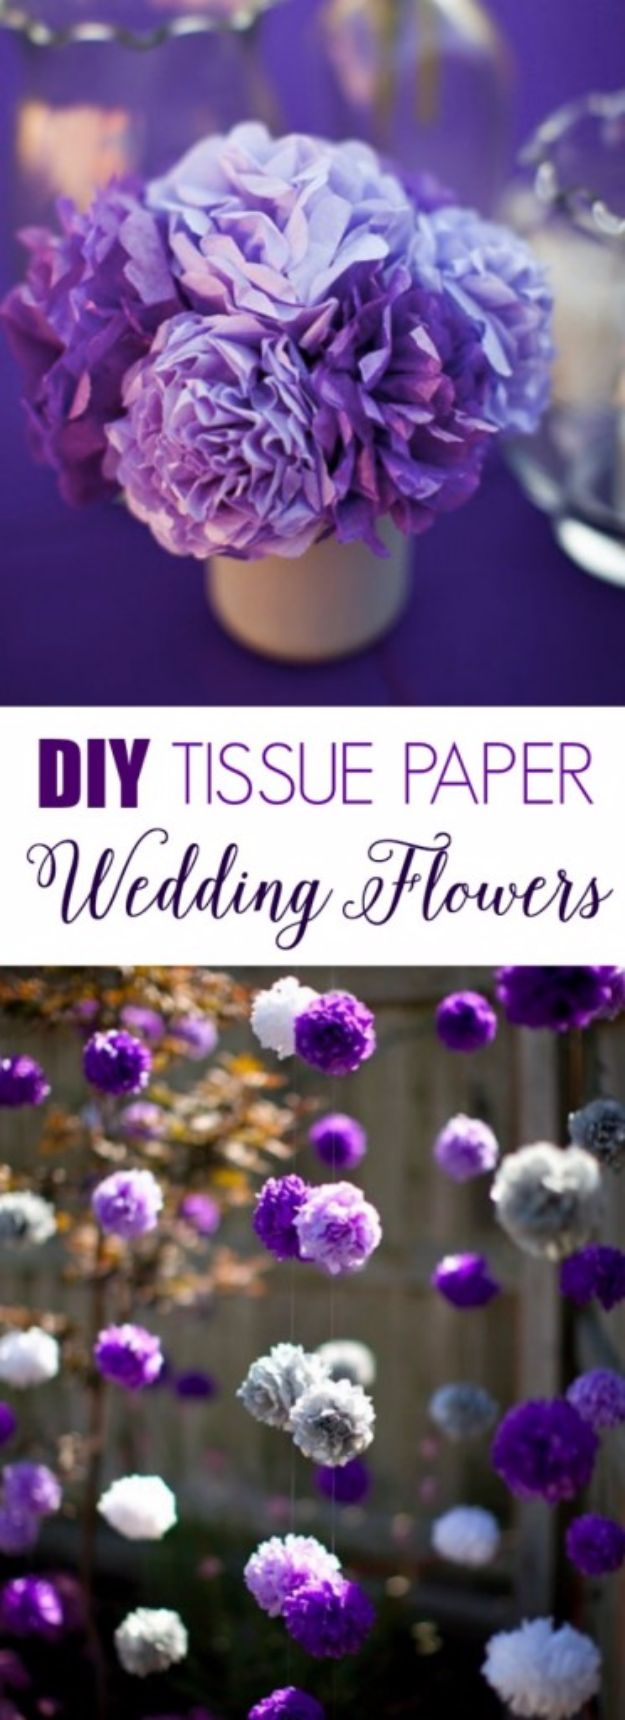 34 diy wedding decor ideas for the bride on a budget diy wedding decor diy tissue paper flowers easy and cheap project ideas with things izmirmasajfo